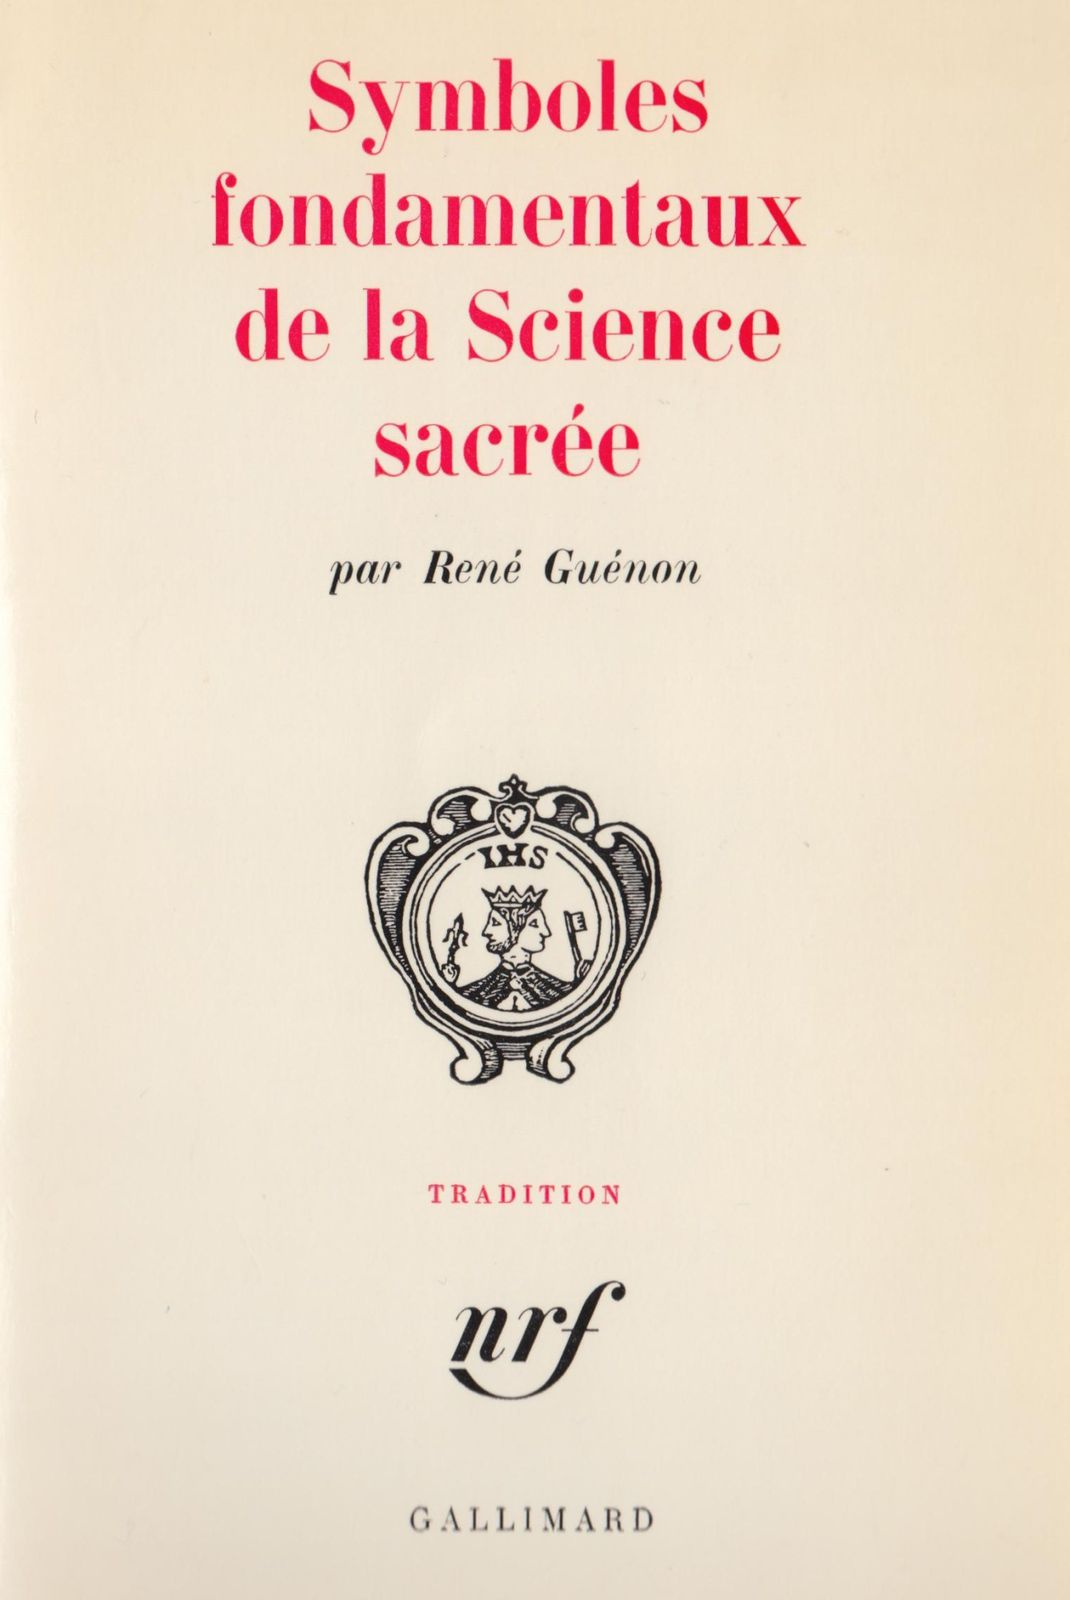 Symbole Bouddhiste Raison D Être symboles fondamentaux de la science sacrée : introduction